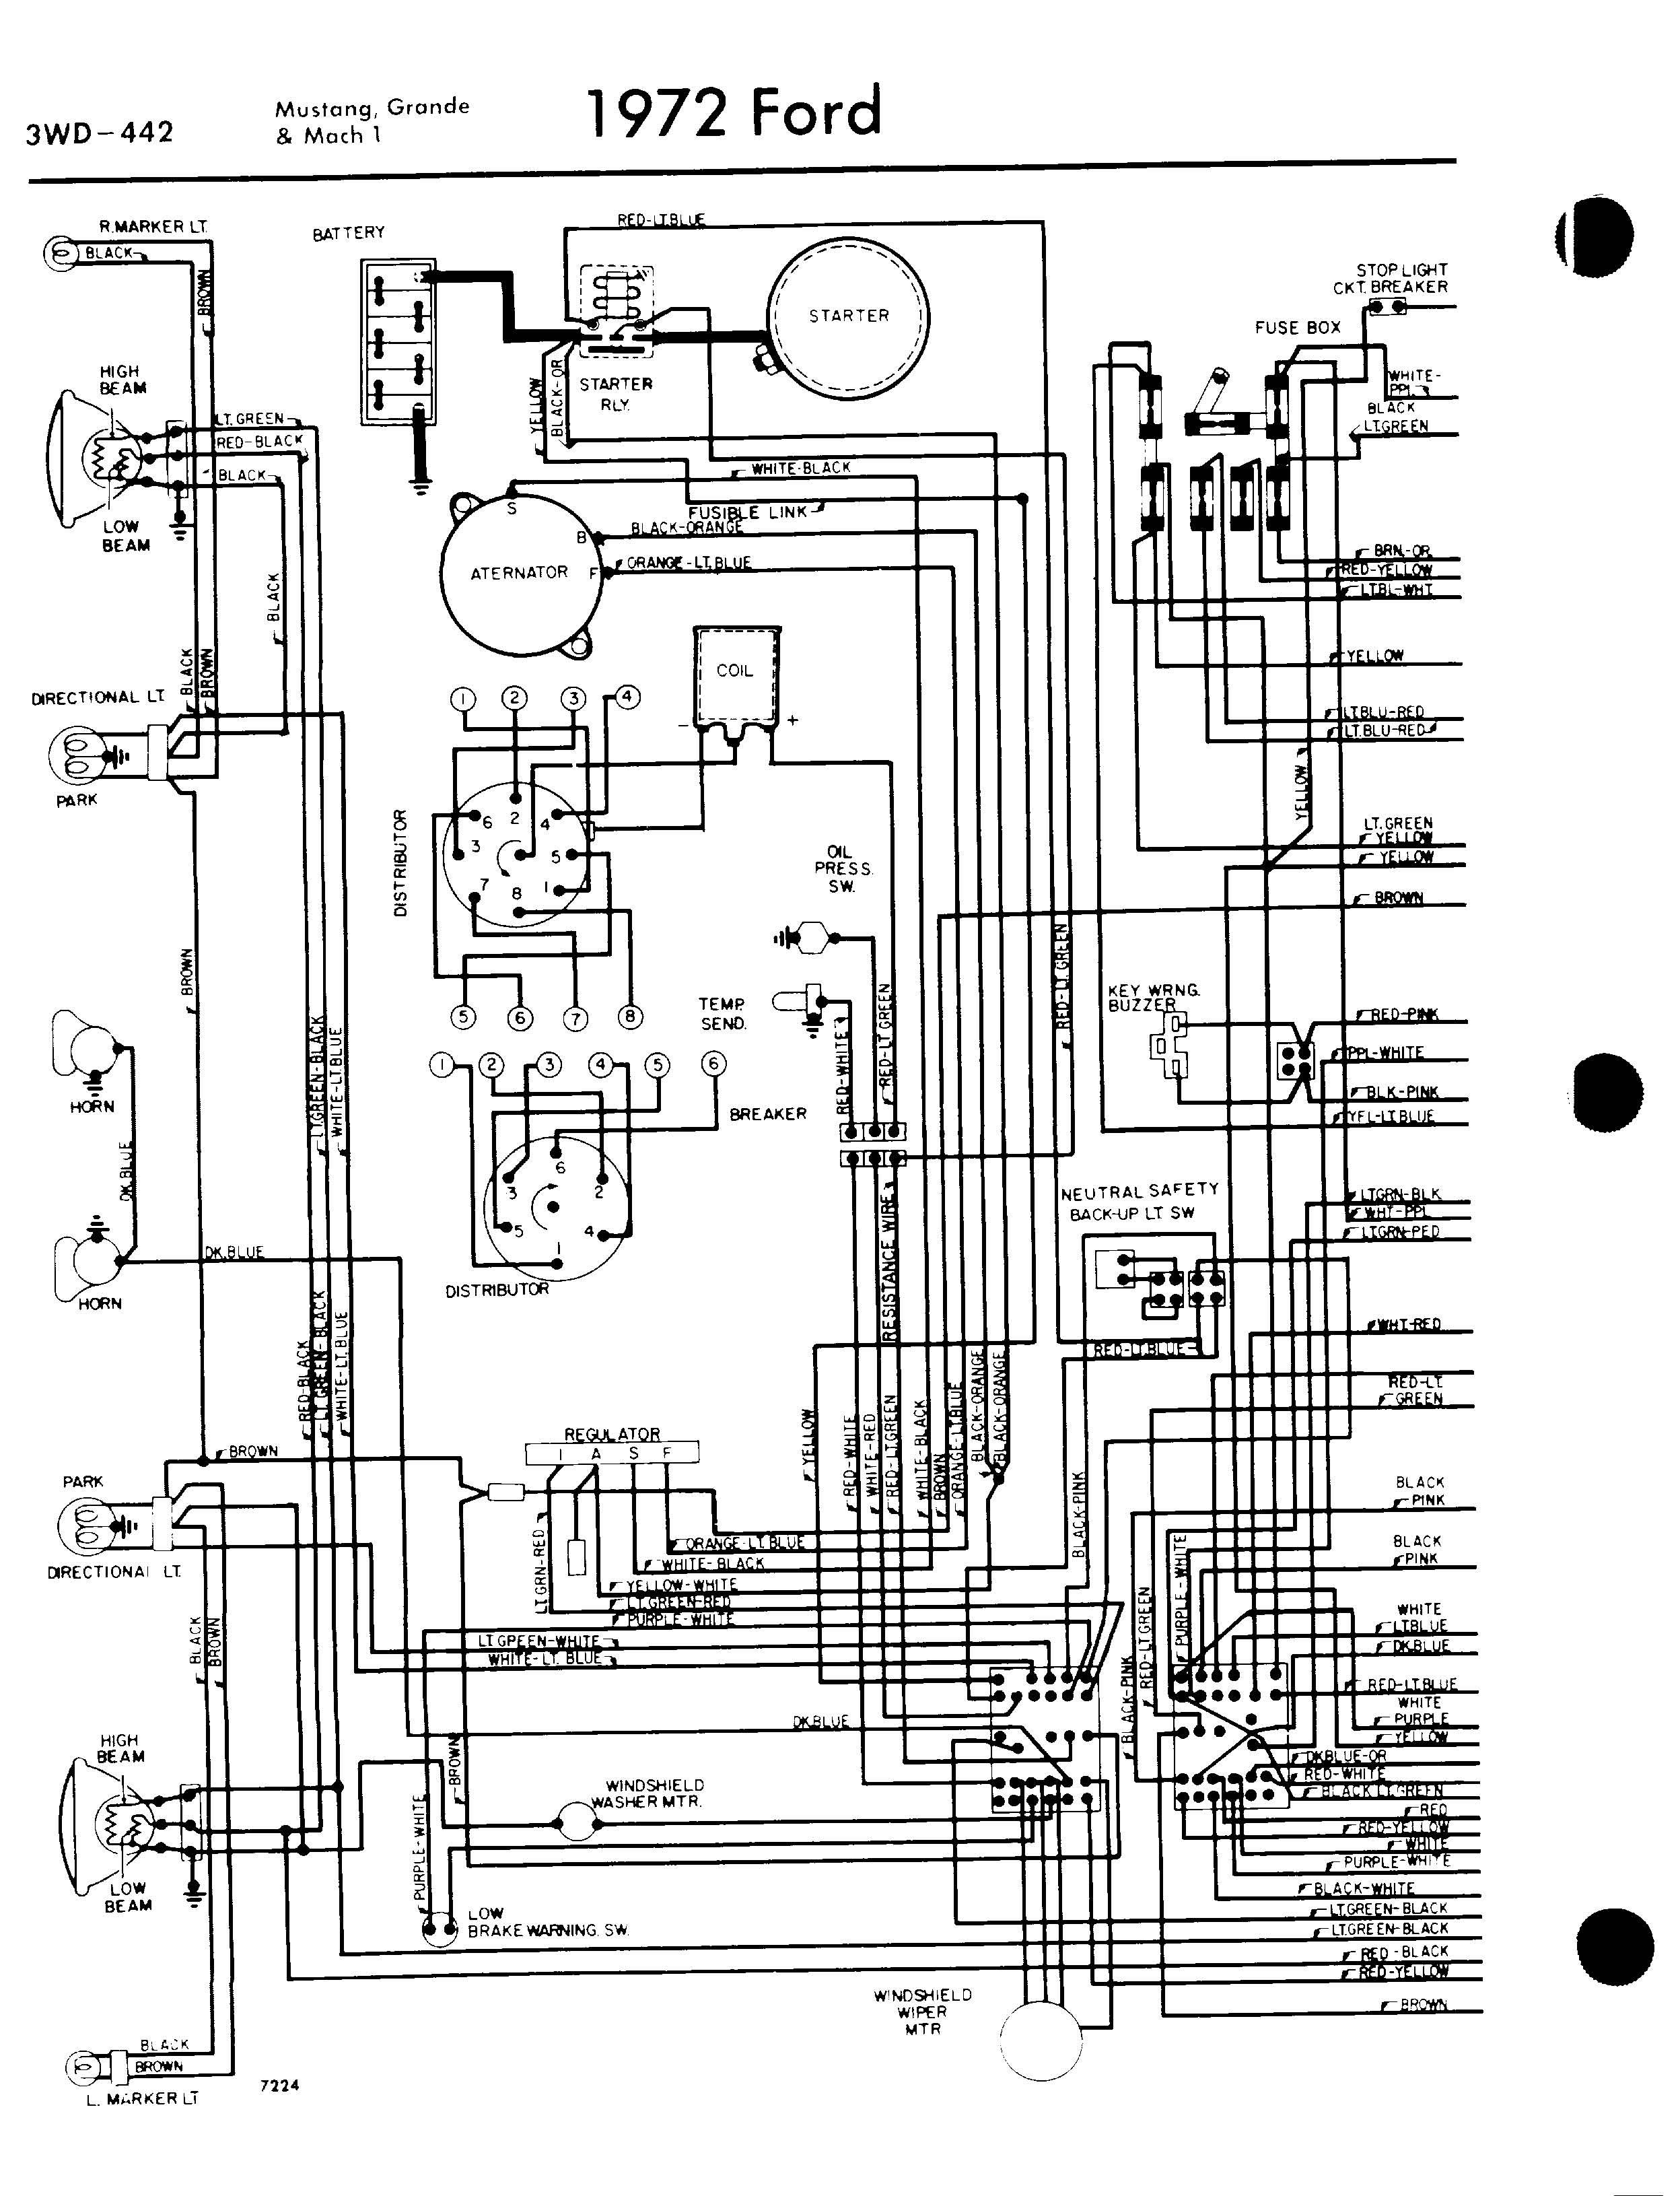 1969 ford mustang wiring diagrams wiring schematic diagram 1969 Mustang Ignition Wiring ford mustang wiring harness diagram wiring block diagram mustang alternator wiring diagram ford mustang wiring wiring